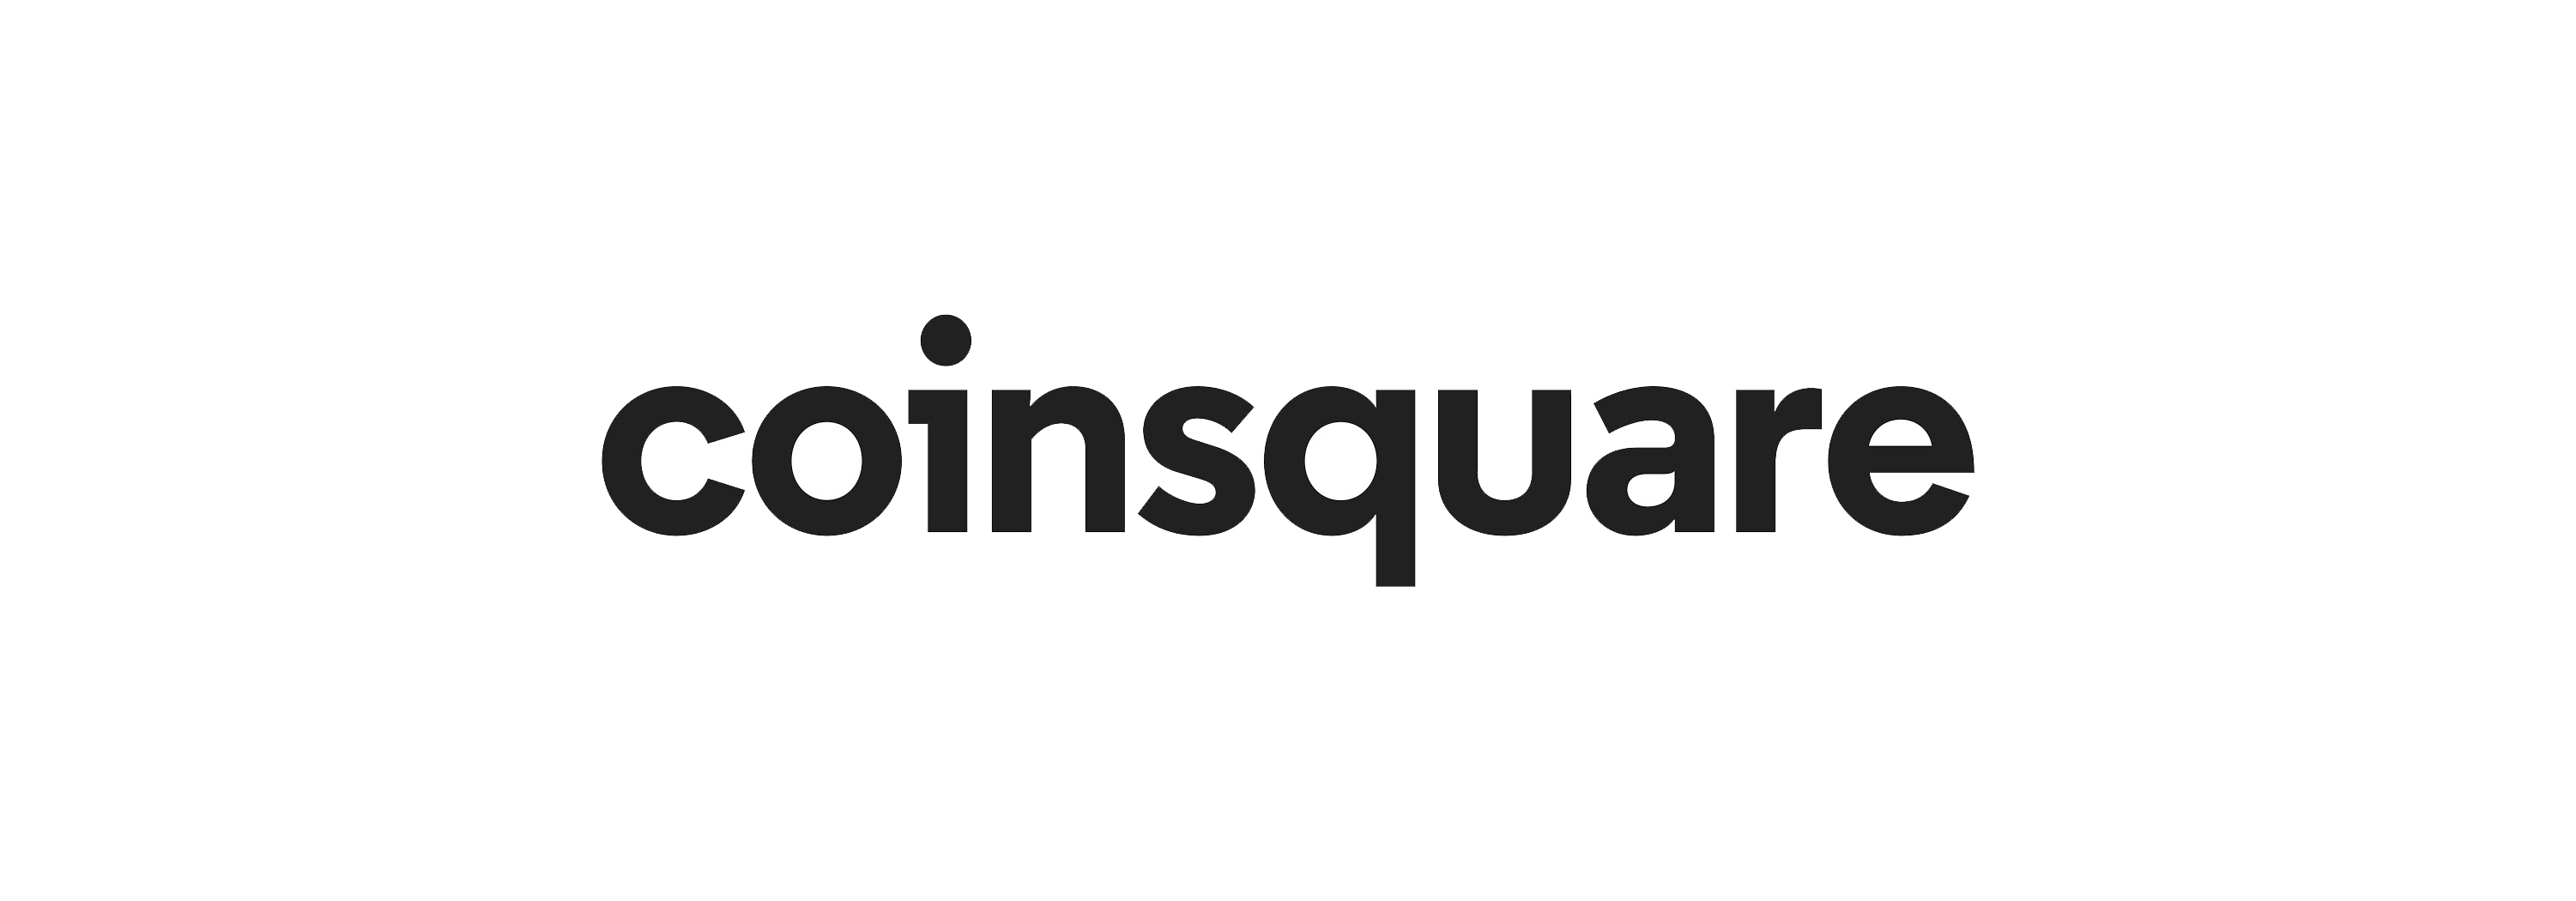 Coinsquare Announces New Leadership Team; Files Applications to Operate a Regulated Digital Asset Marketplace in Canada